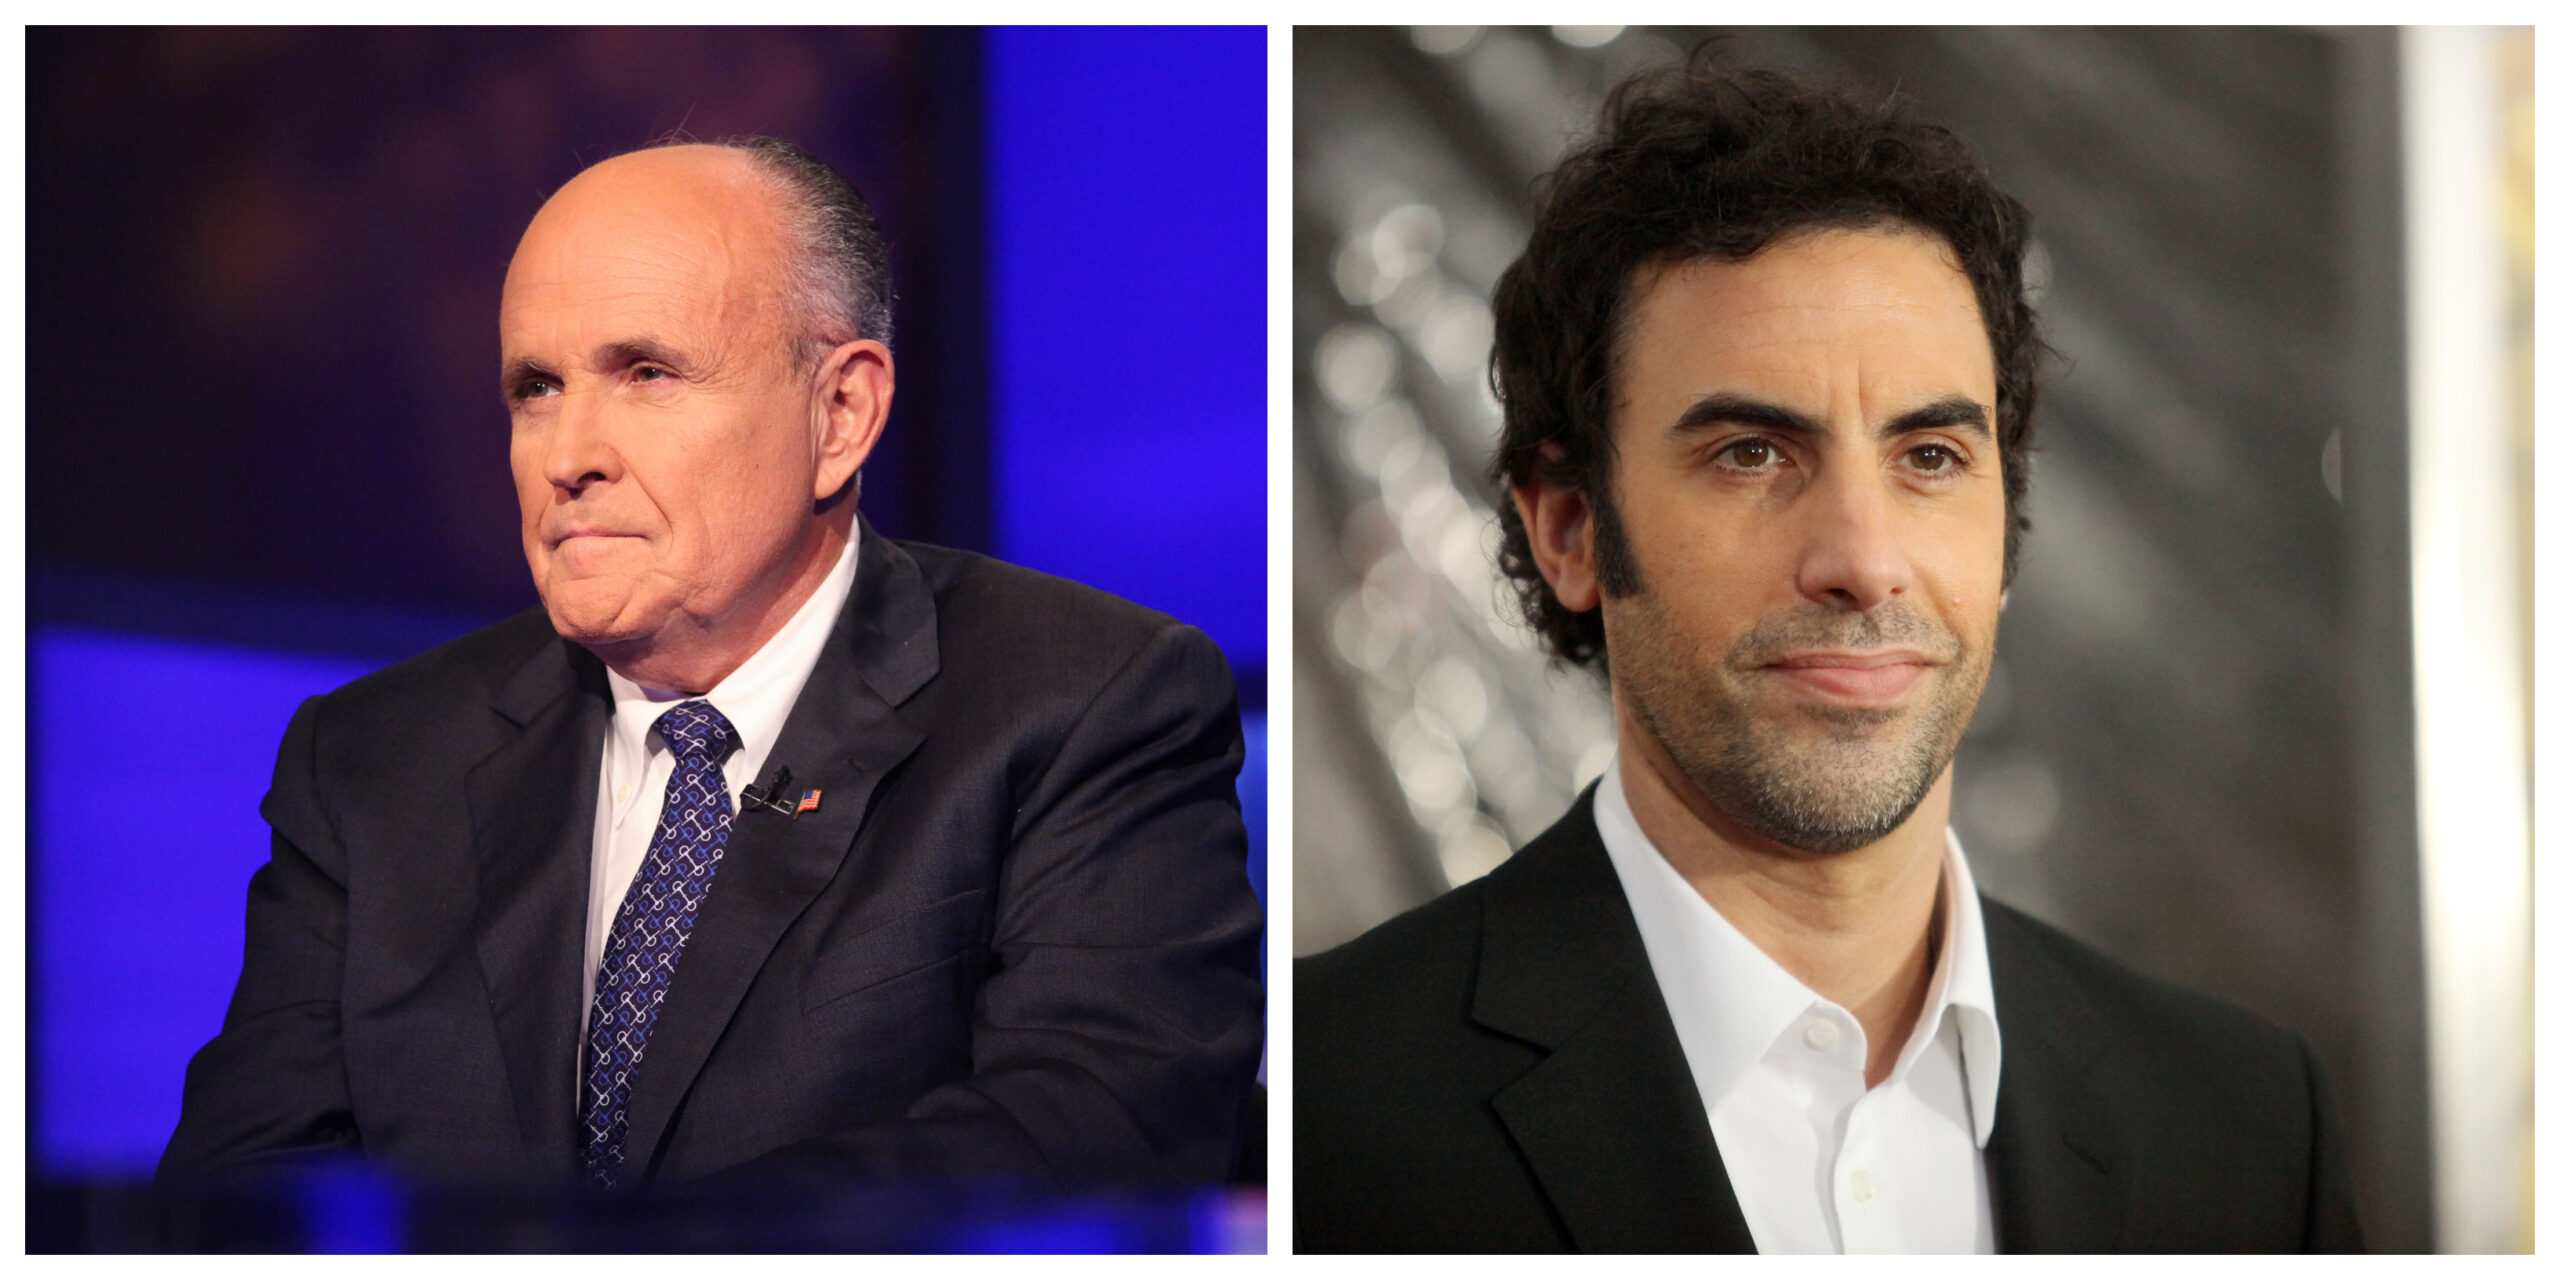 Rudy Giuliani Calls Cops on Sacha Baron Cohen Over Presumably Hilarious Prank